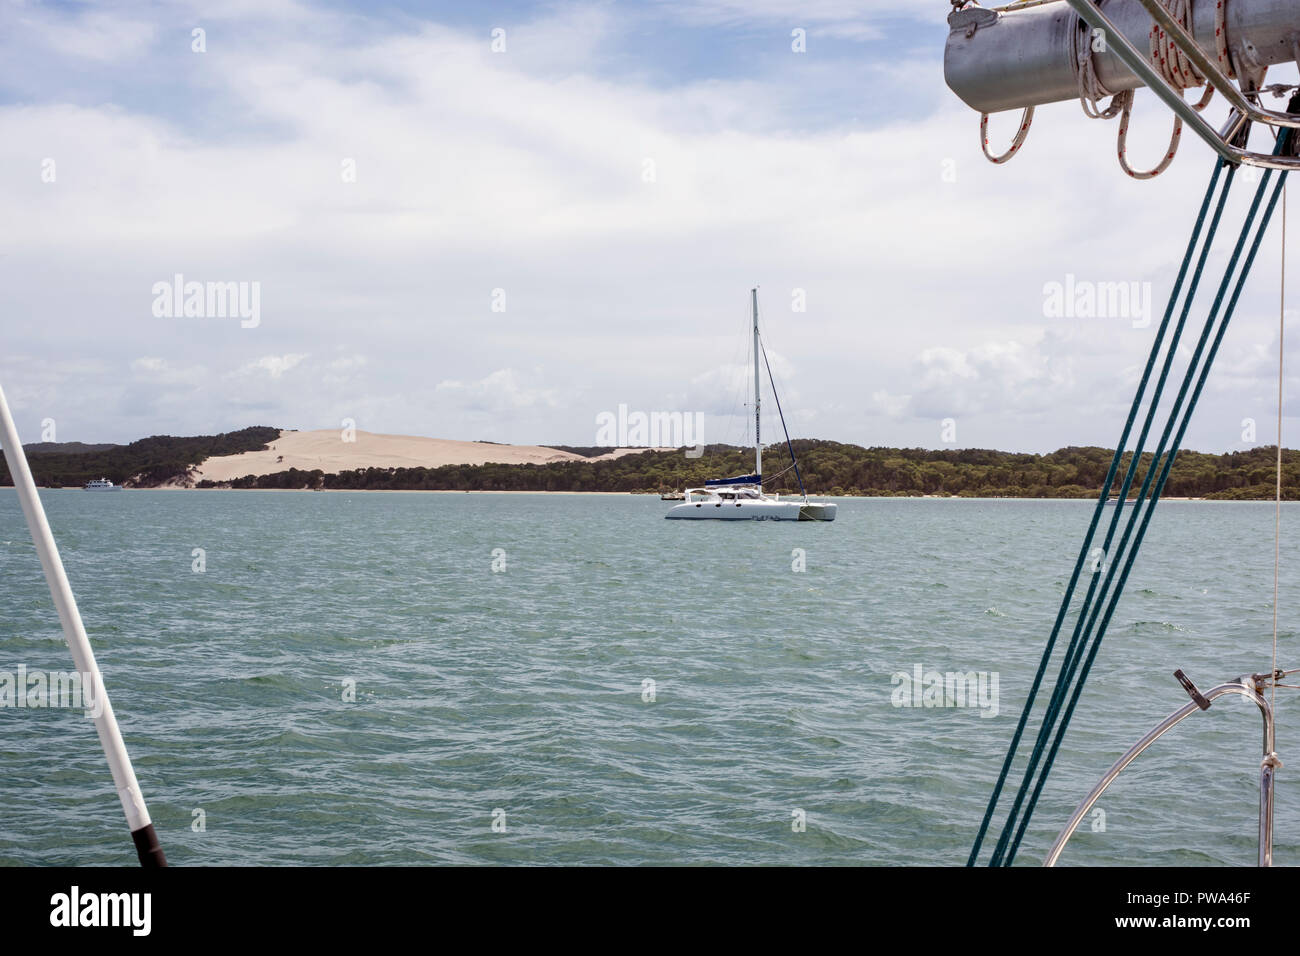 Idyllic Moreton Island, Moreton Bay, Queensland Australia as viewed from the stern of a yacht. - Stock Image